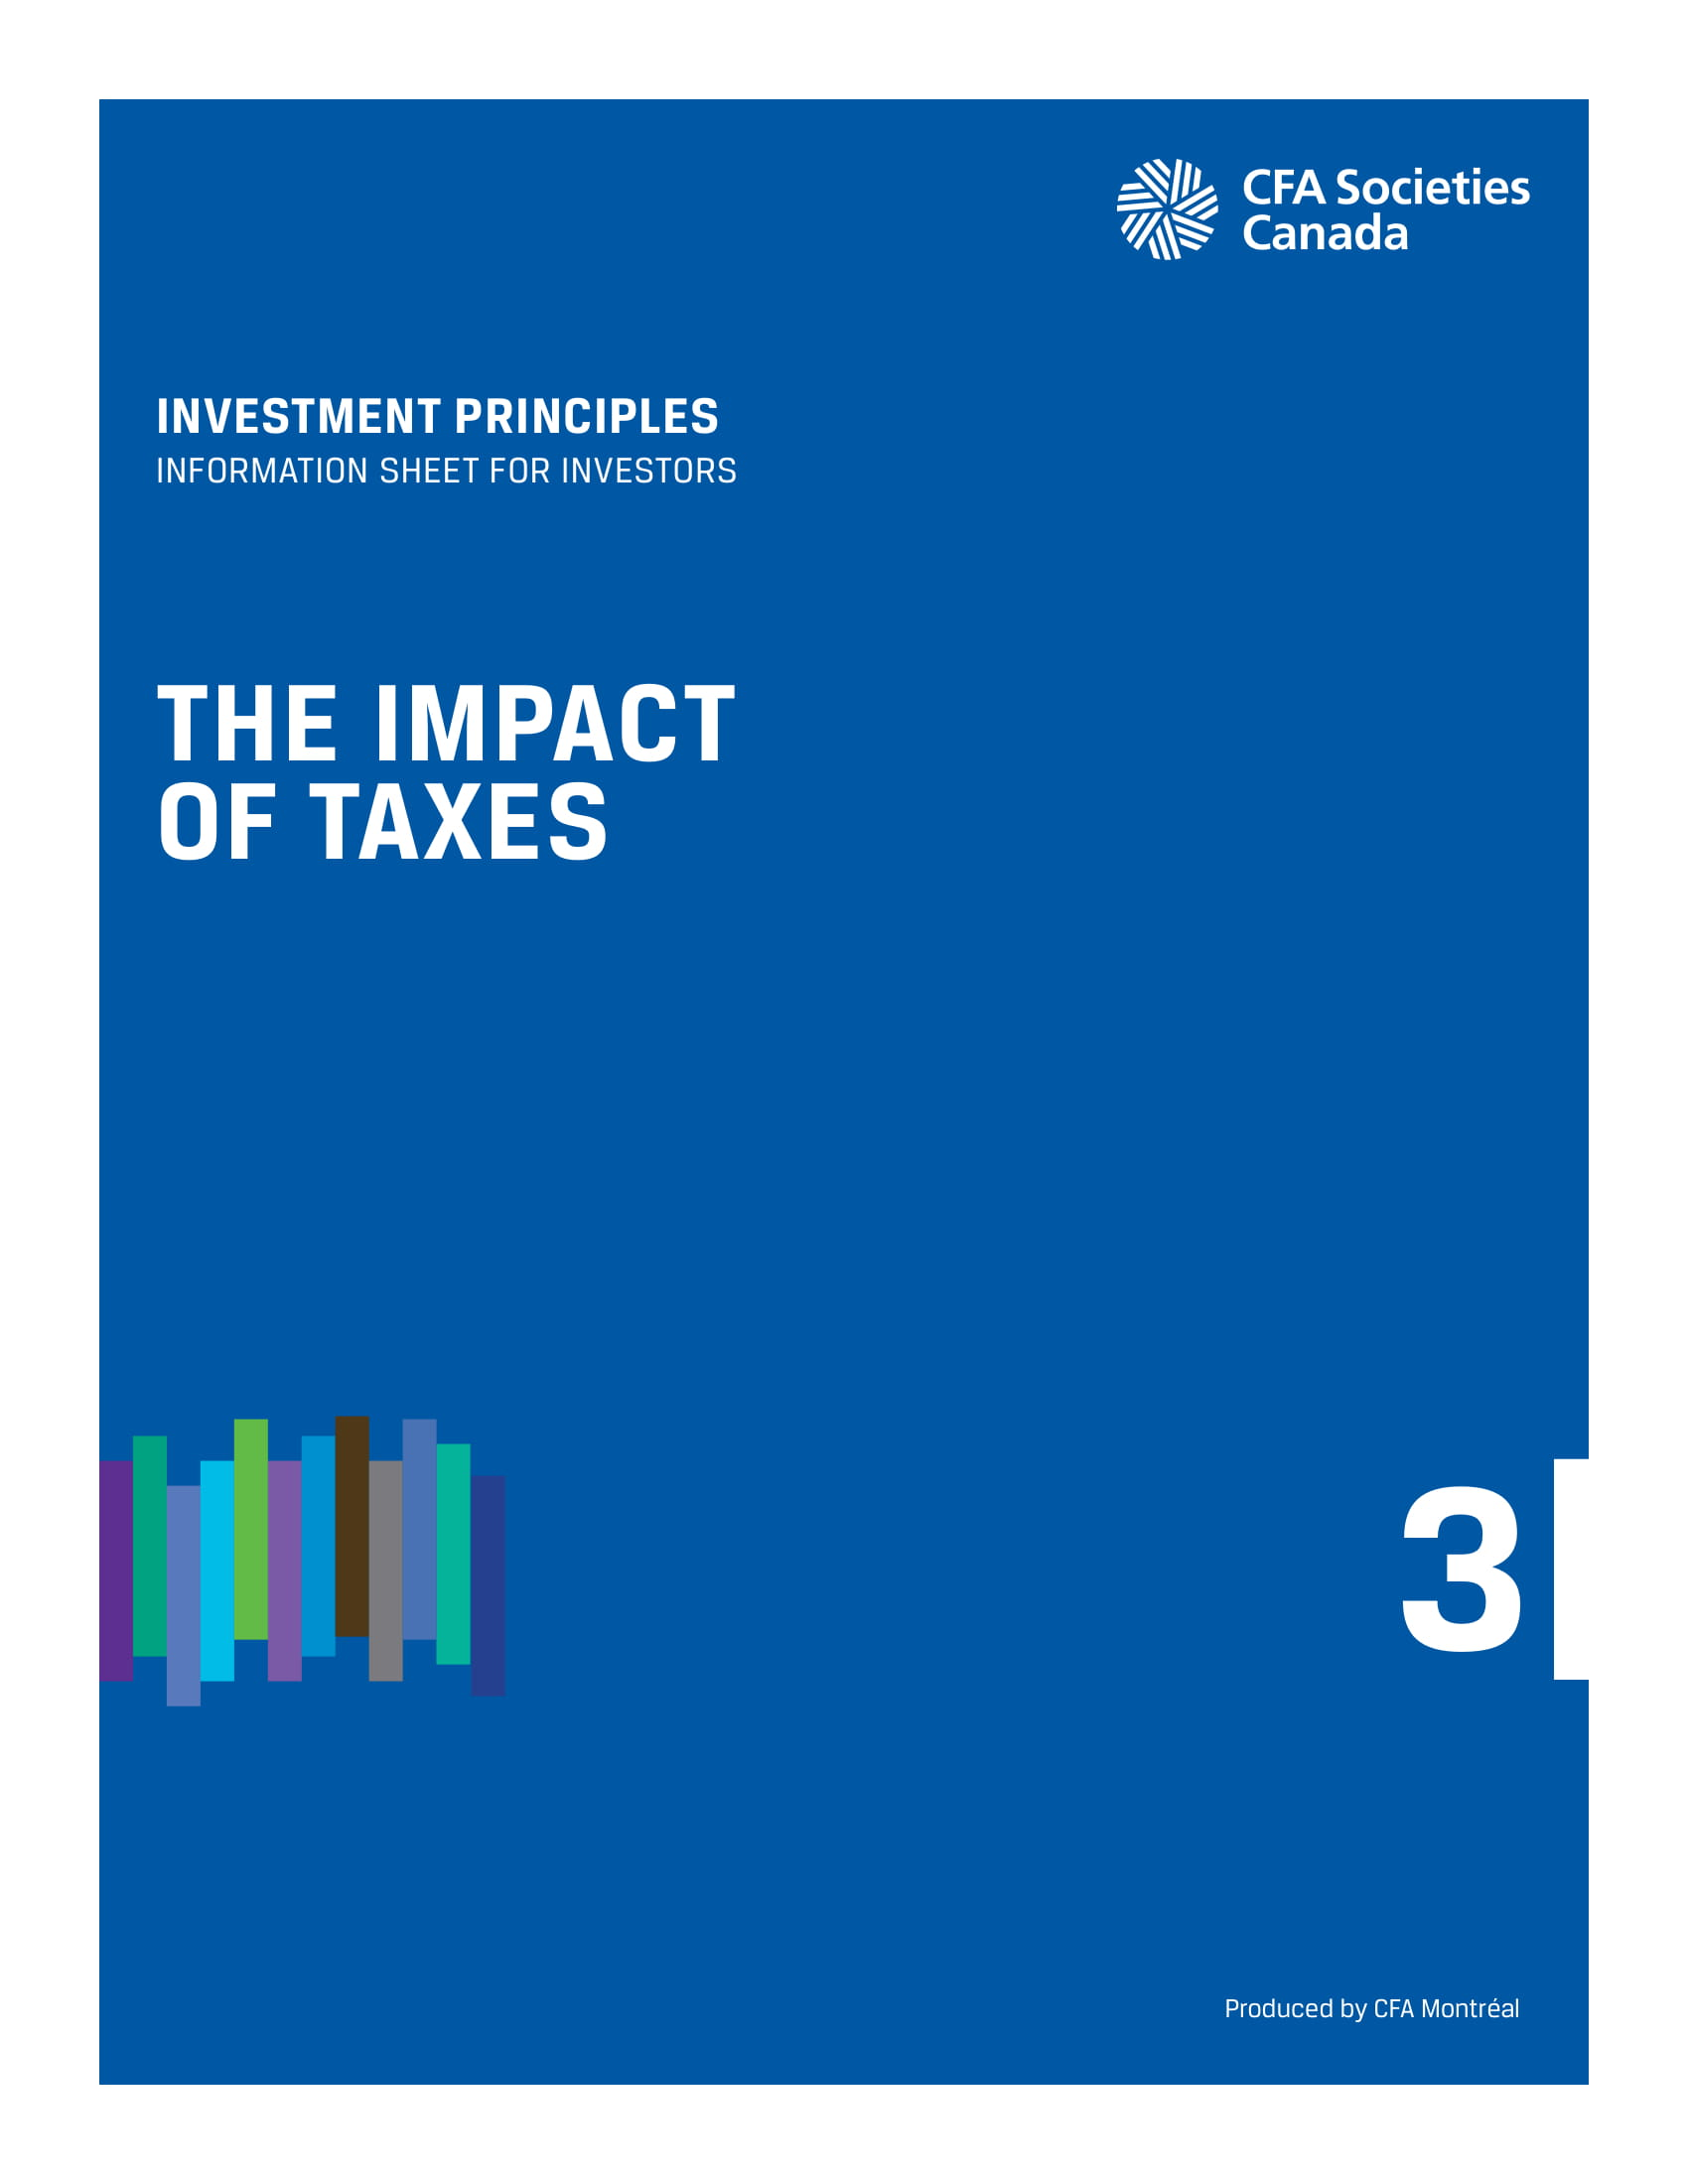 3. Investors - The Impact of Taxes_p1-1-1.jpg